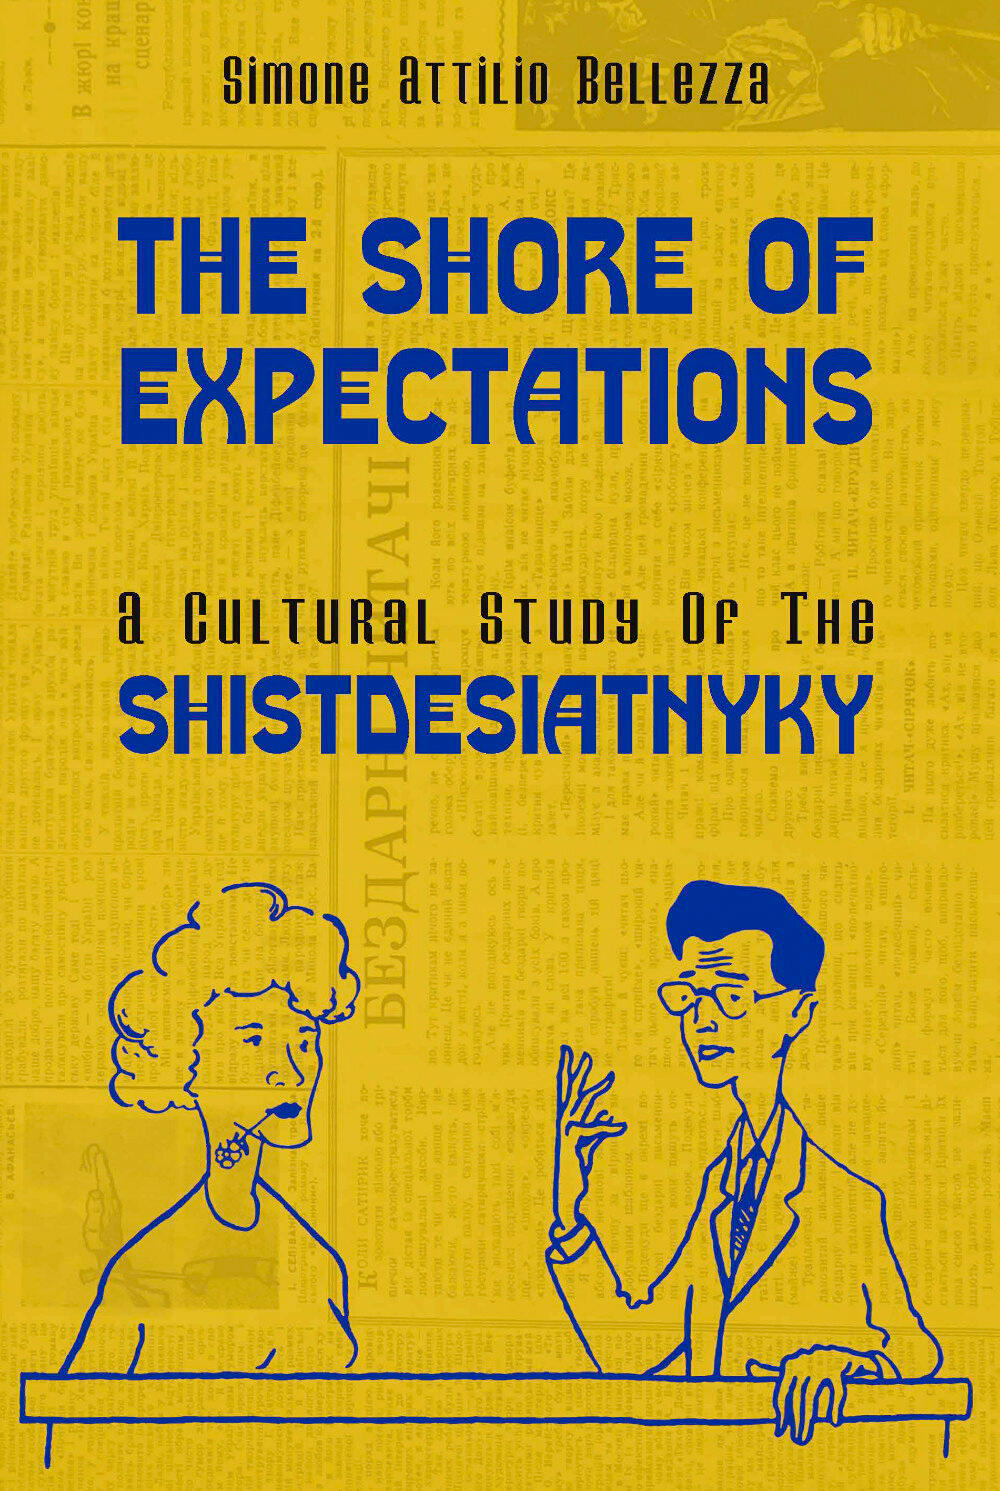 Shore of Expectations book cover